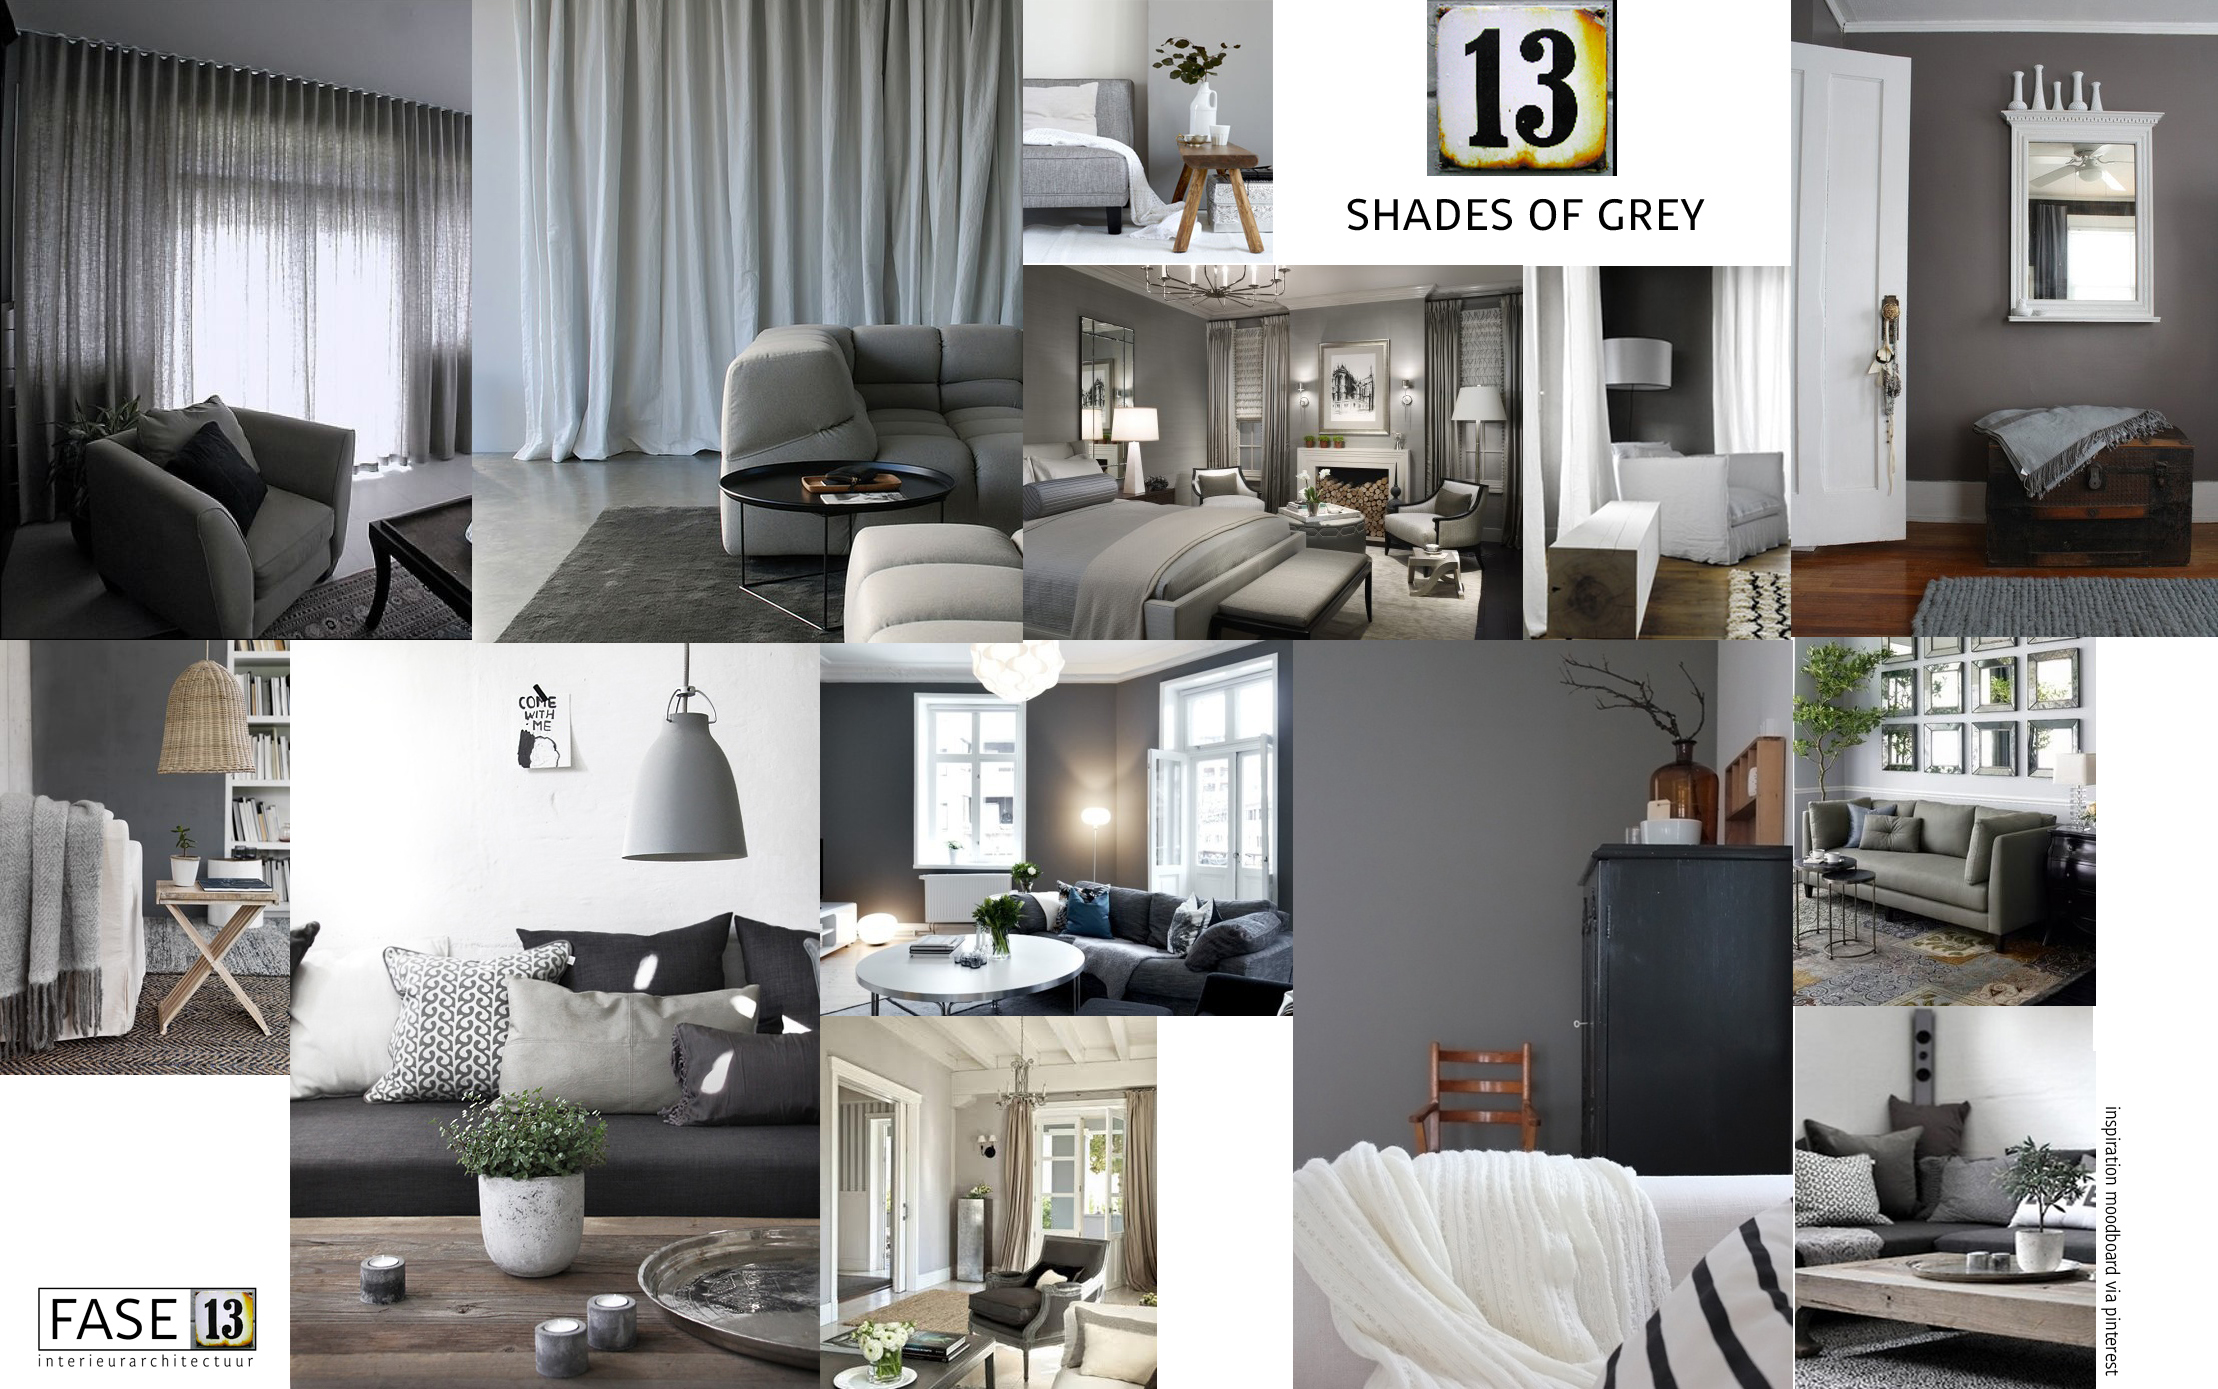 13 shades of grey - FASE13  Interieurarchitectuur #